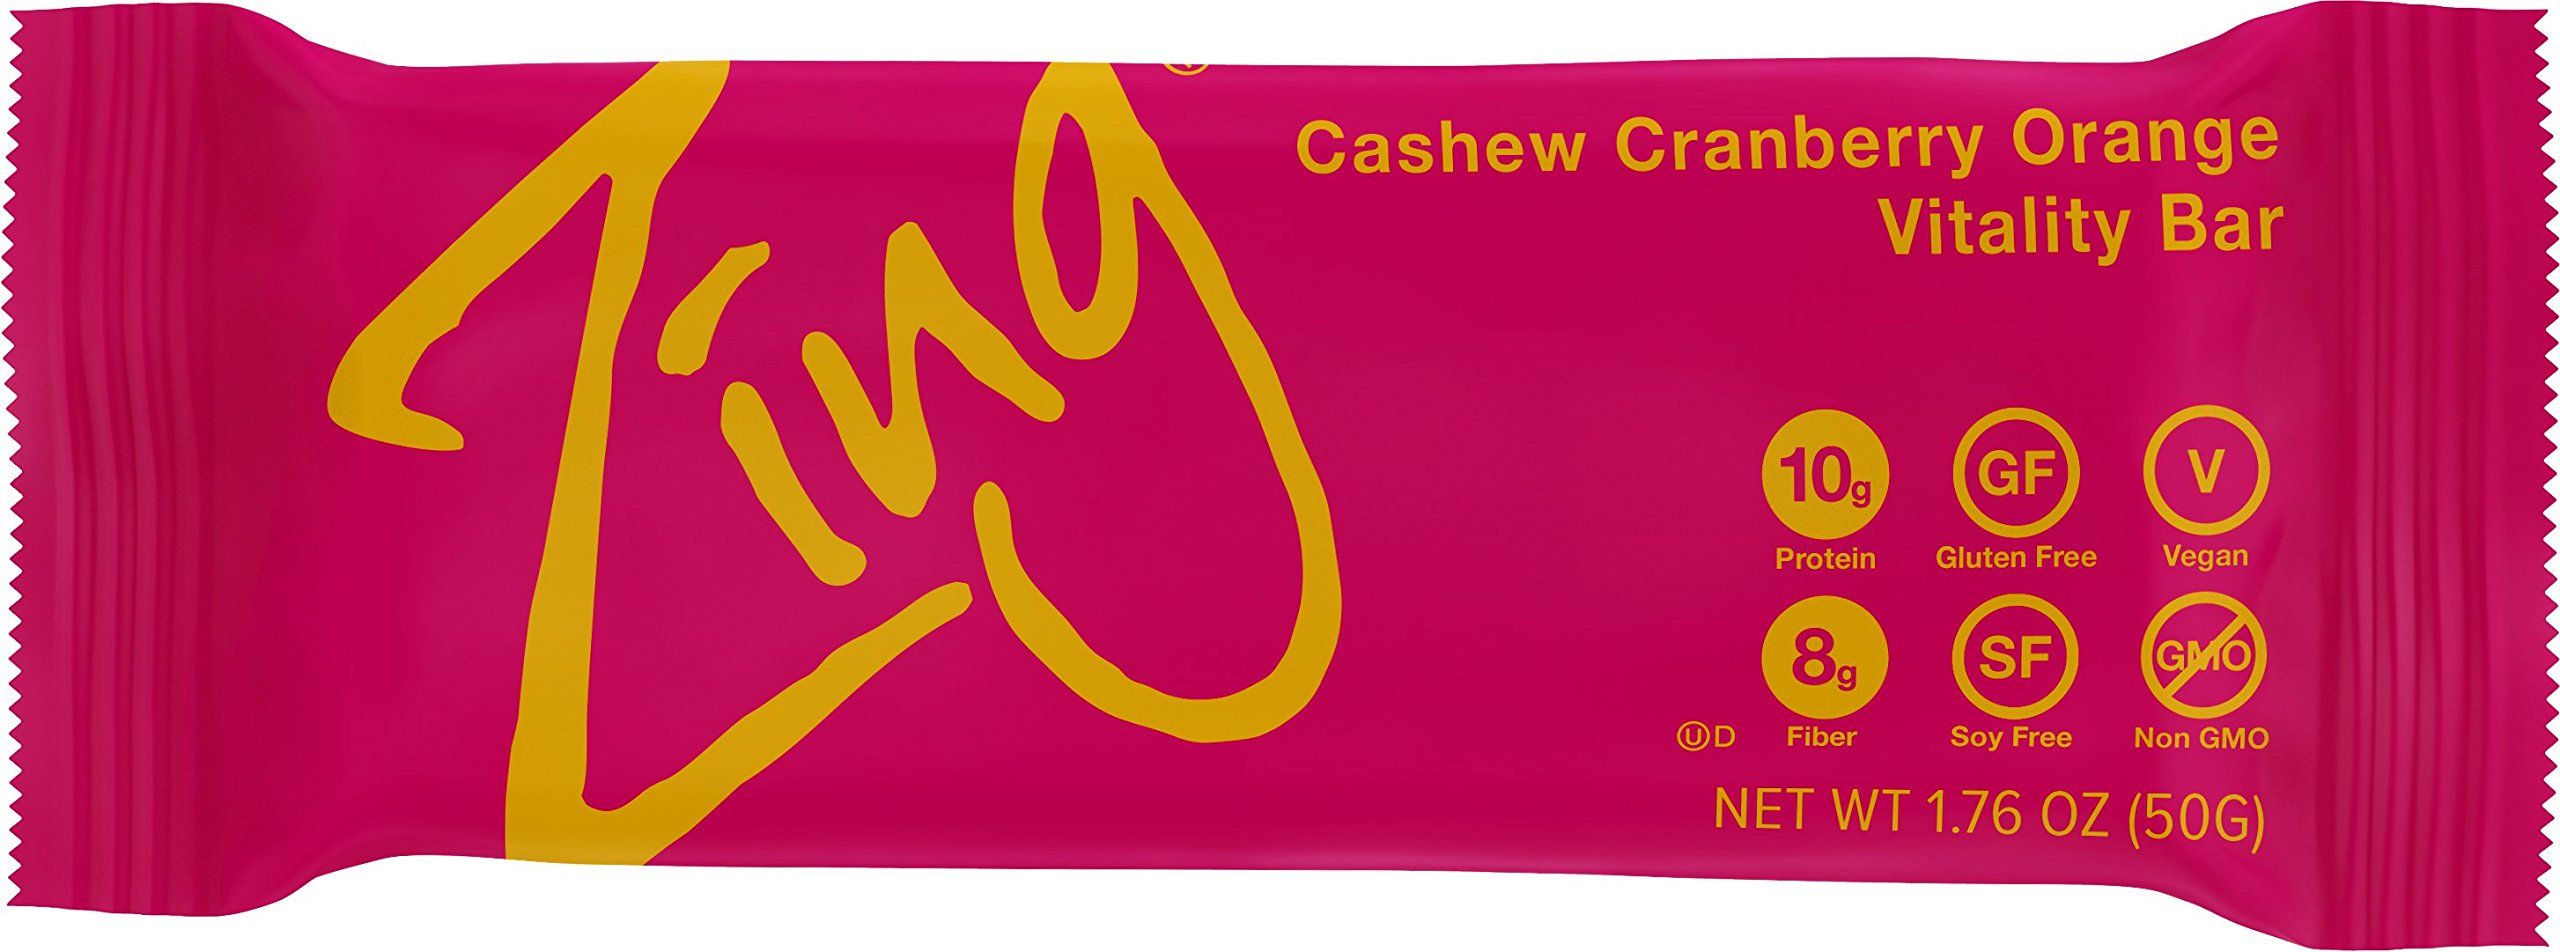 Zing Nutrition Bar, Cashew Cranberry Orange, (Pack of 12), Non-GMO Snack Bar for Optimum Energy, Gluten & Soy Free, Plant-Based Protein by Zing Bars (Image #1)